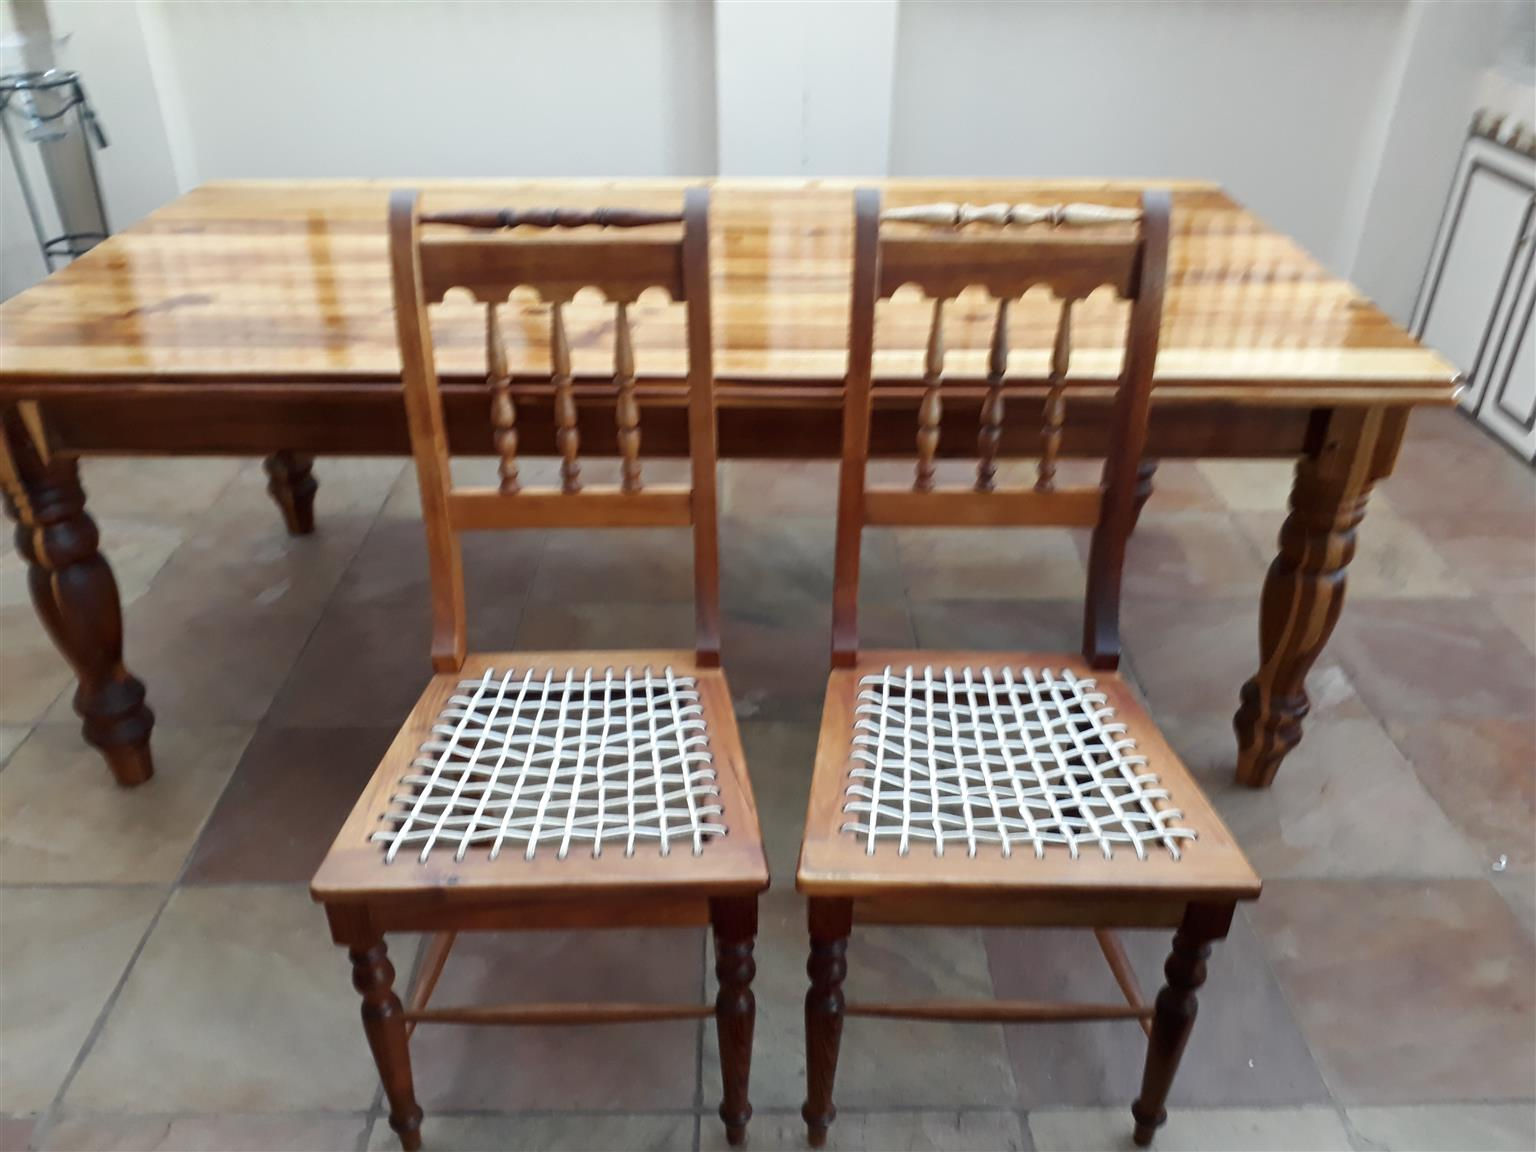 8 Seater Blackwood Dining Room Table And 2 Riempie Chairs